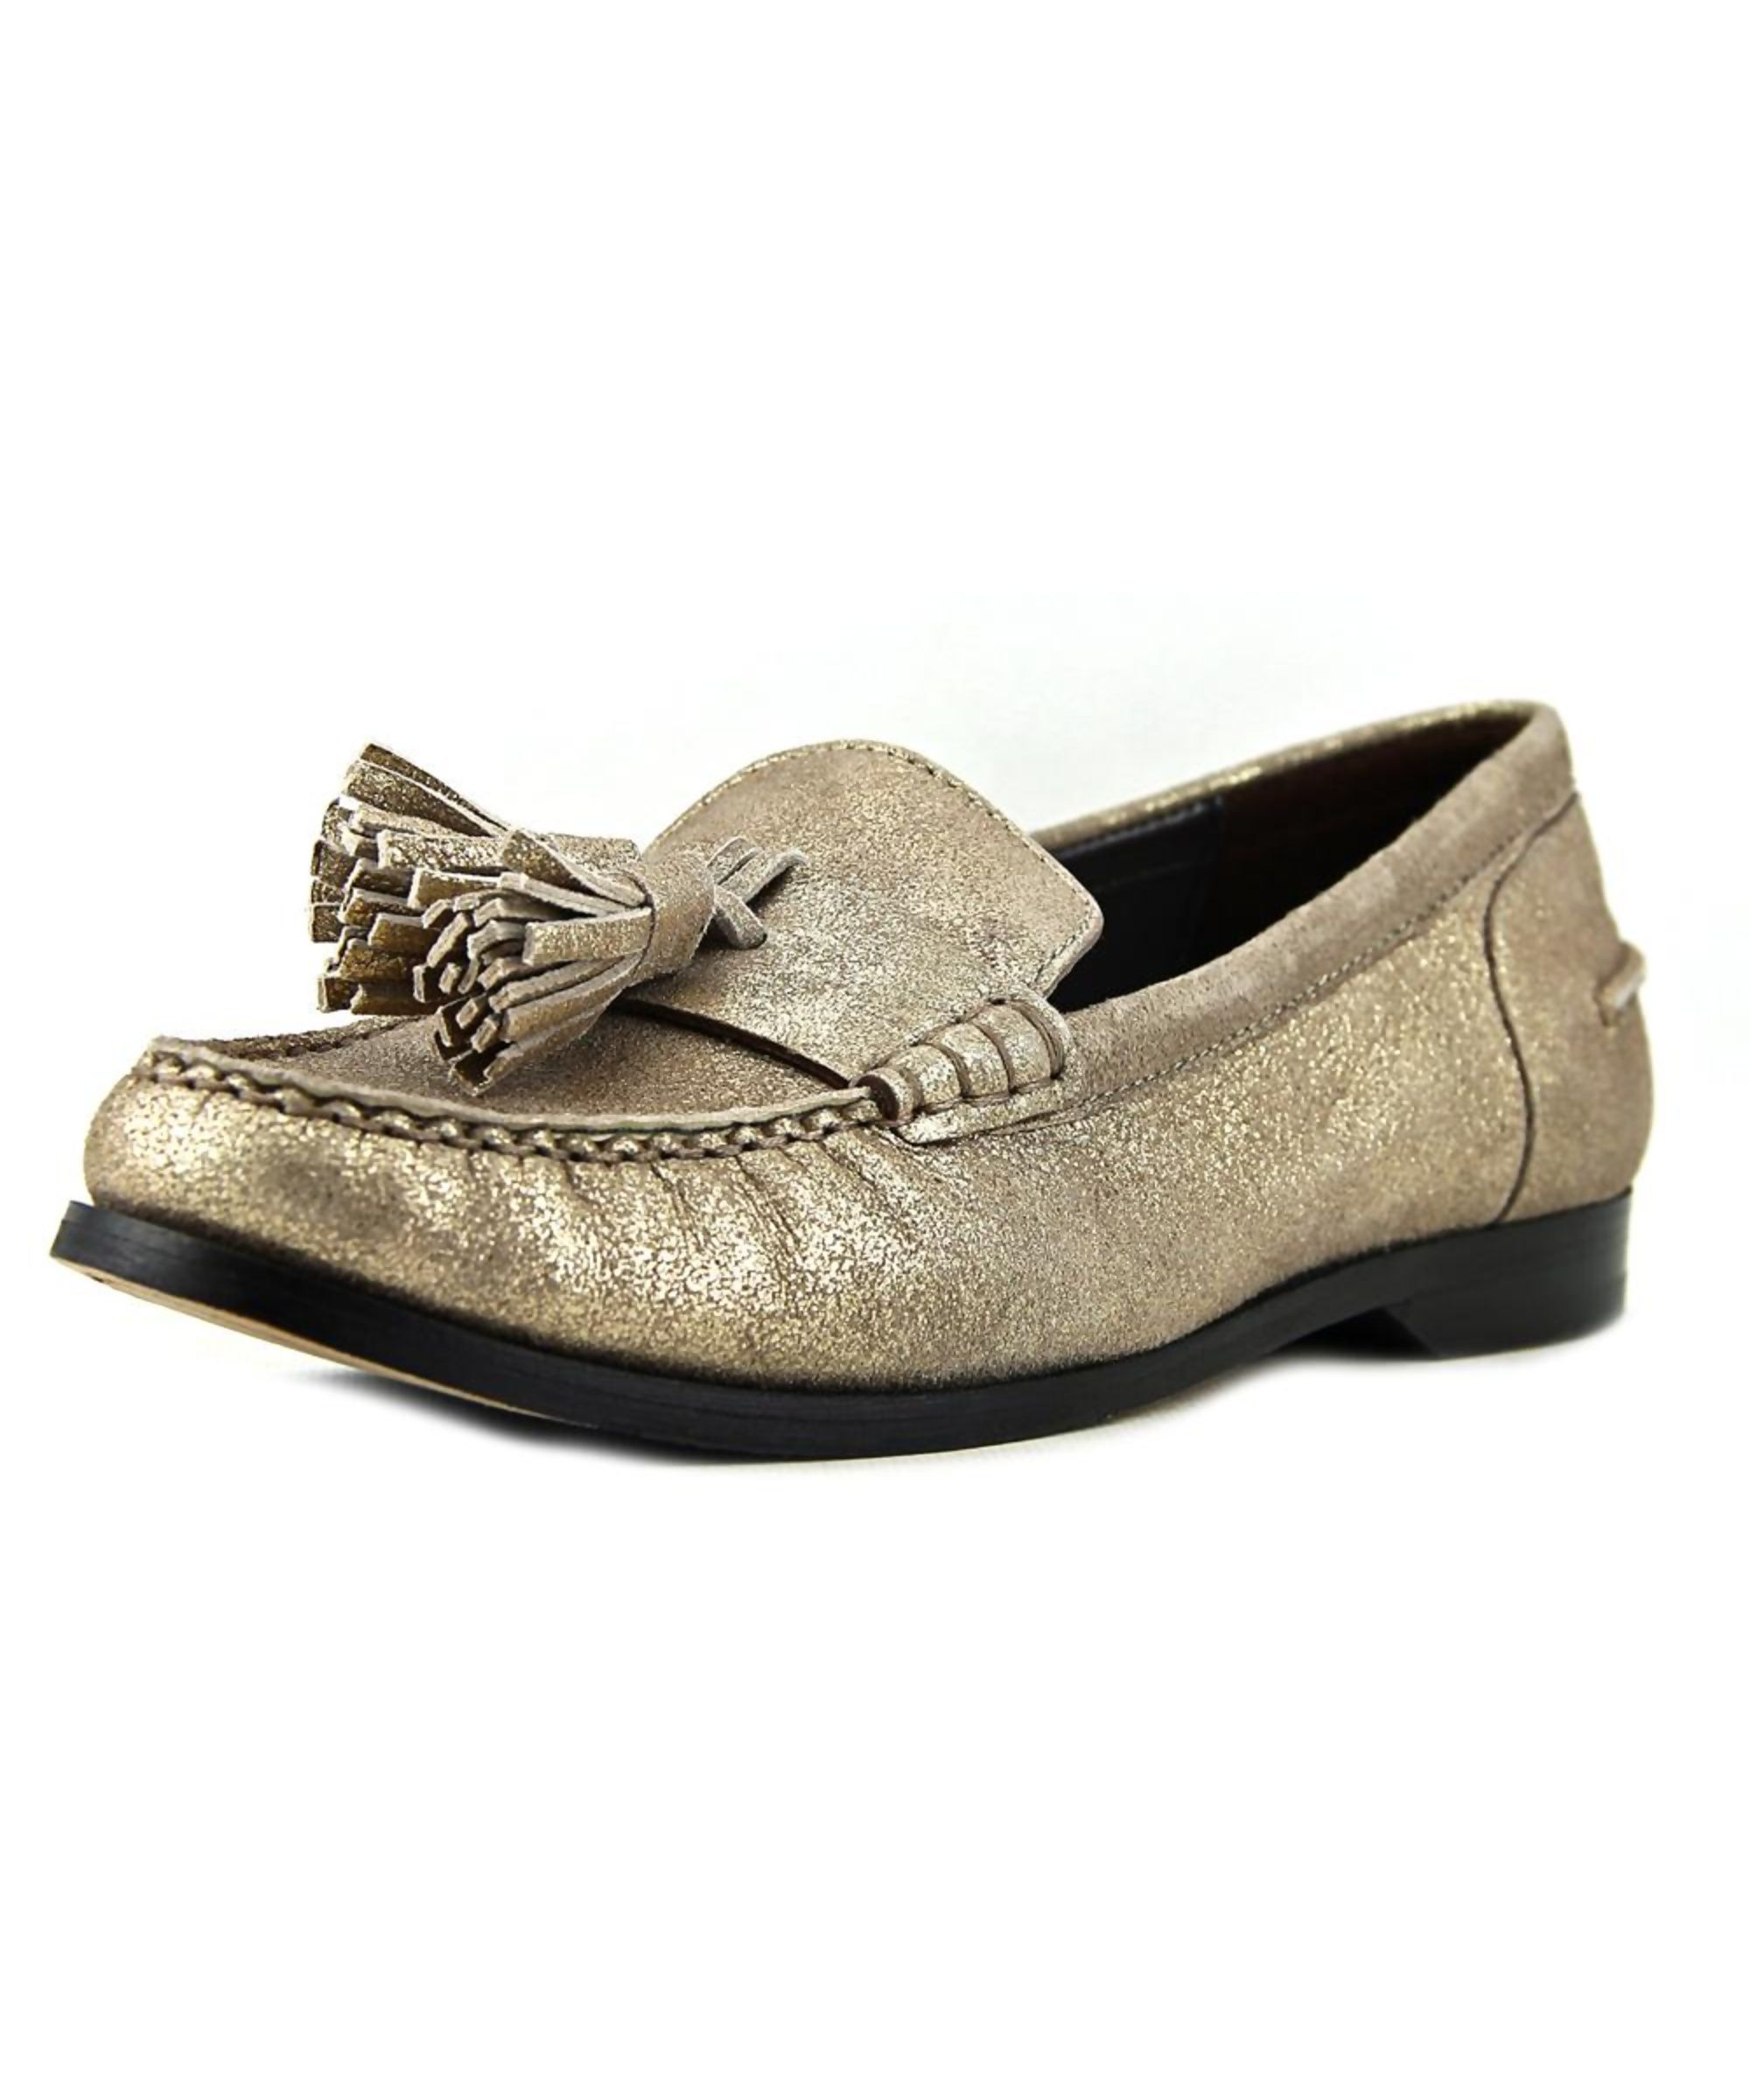 Womens Shoes Cole Haan Pinch Grand Tassel Gold Metallic